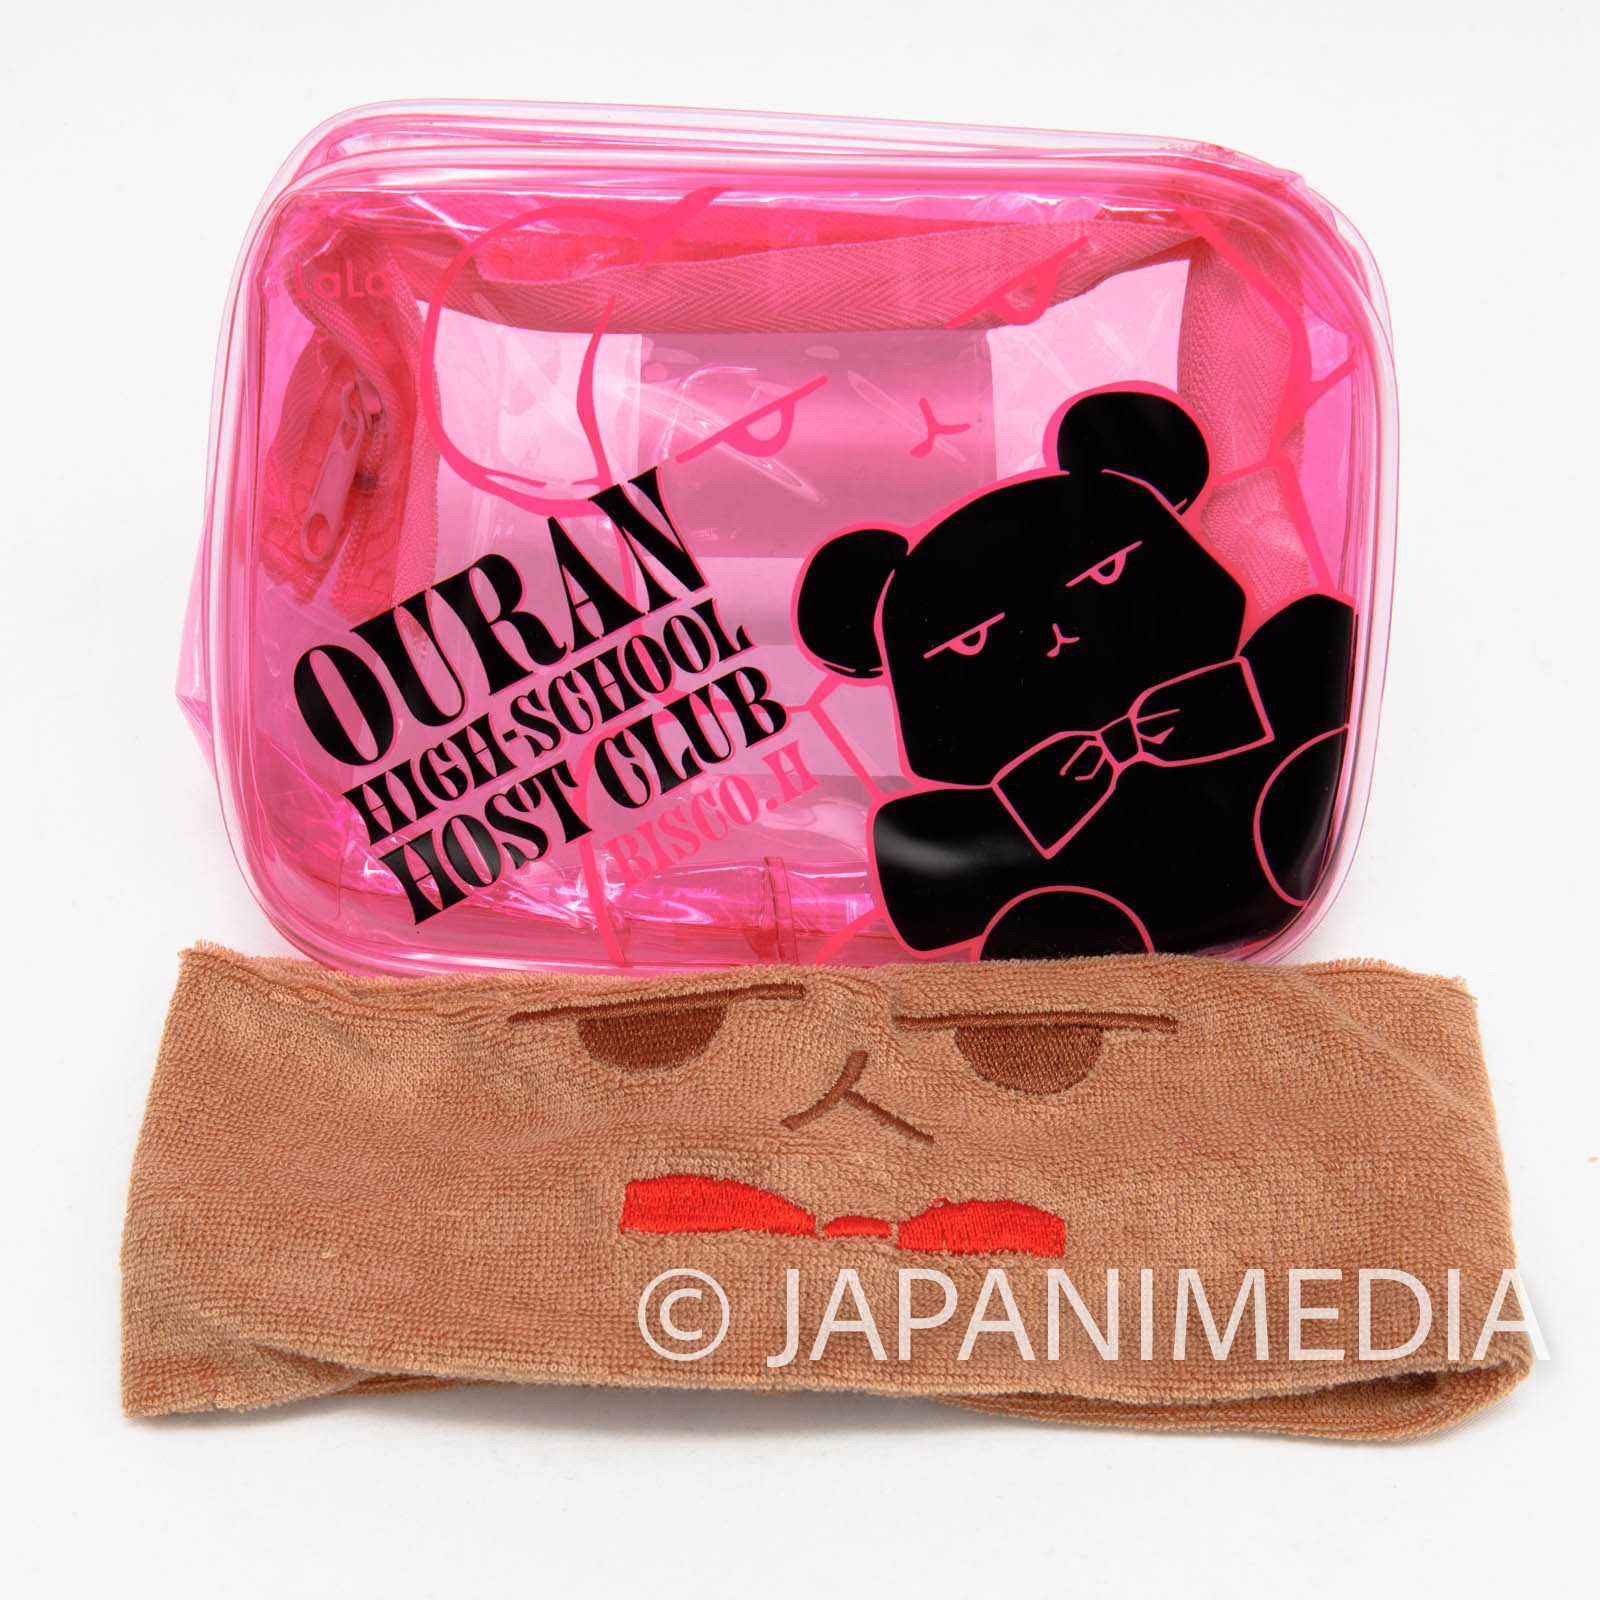 Ouran High School Host Club Kuma-chan Clear Pouch bag & Hairband Set JAPAN MANGA